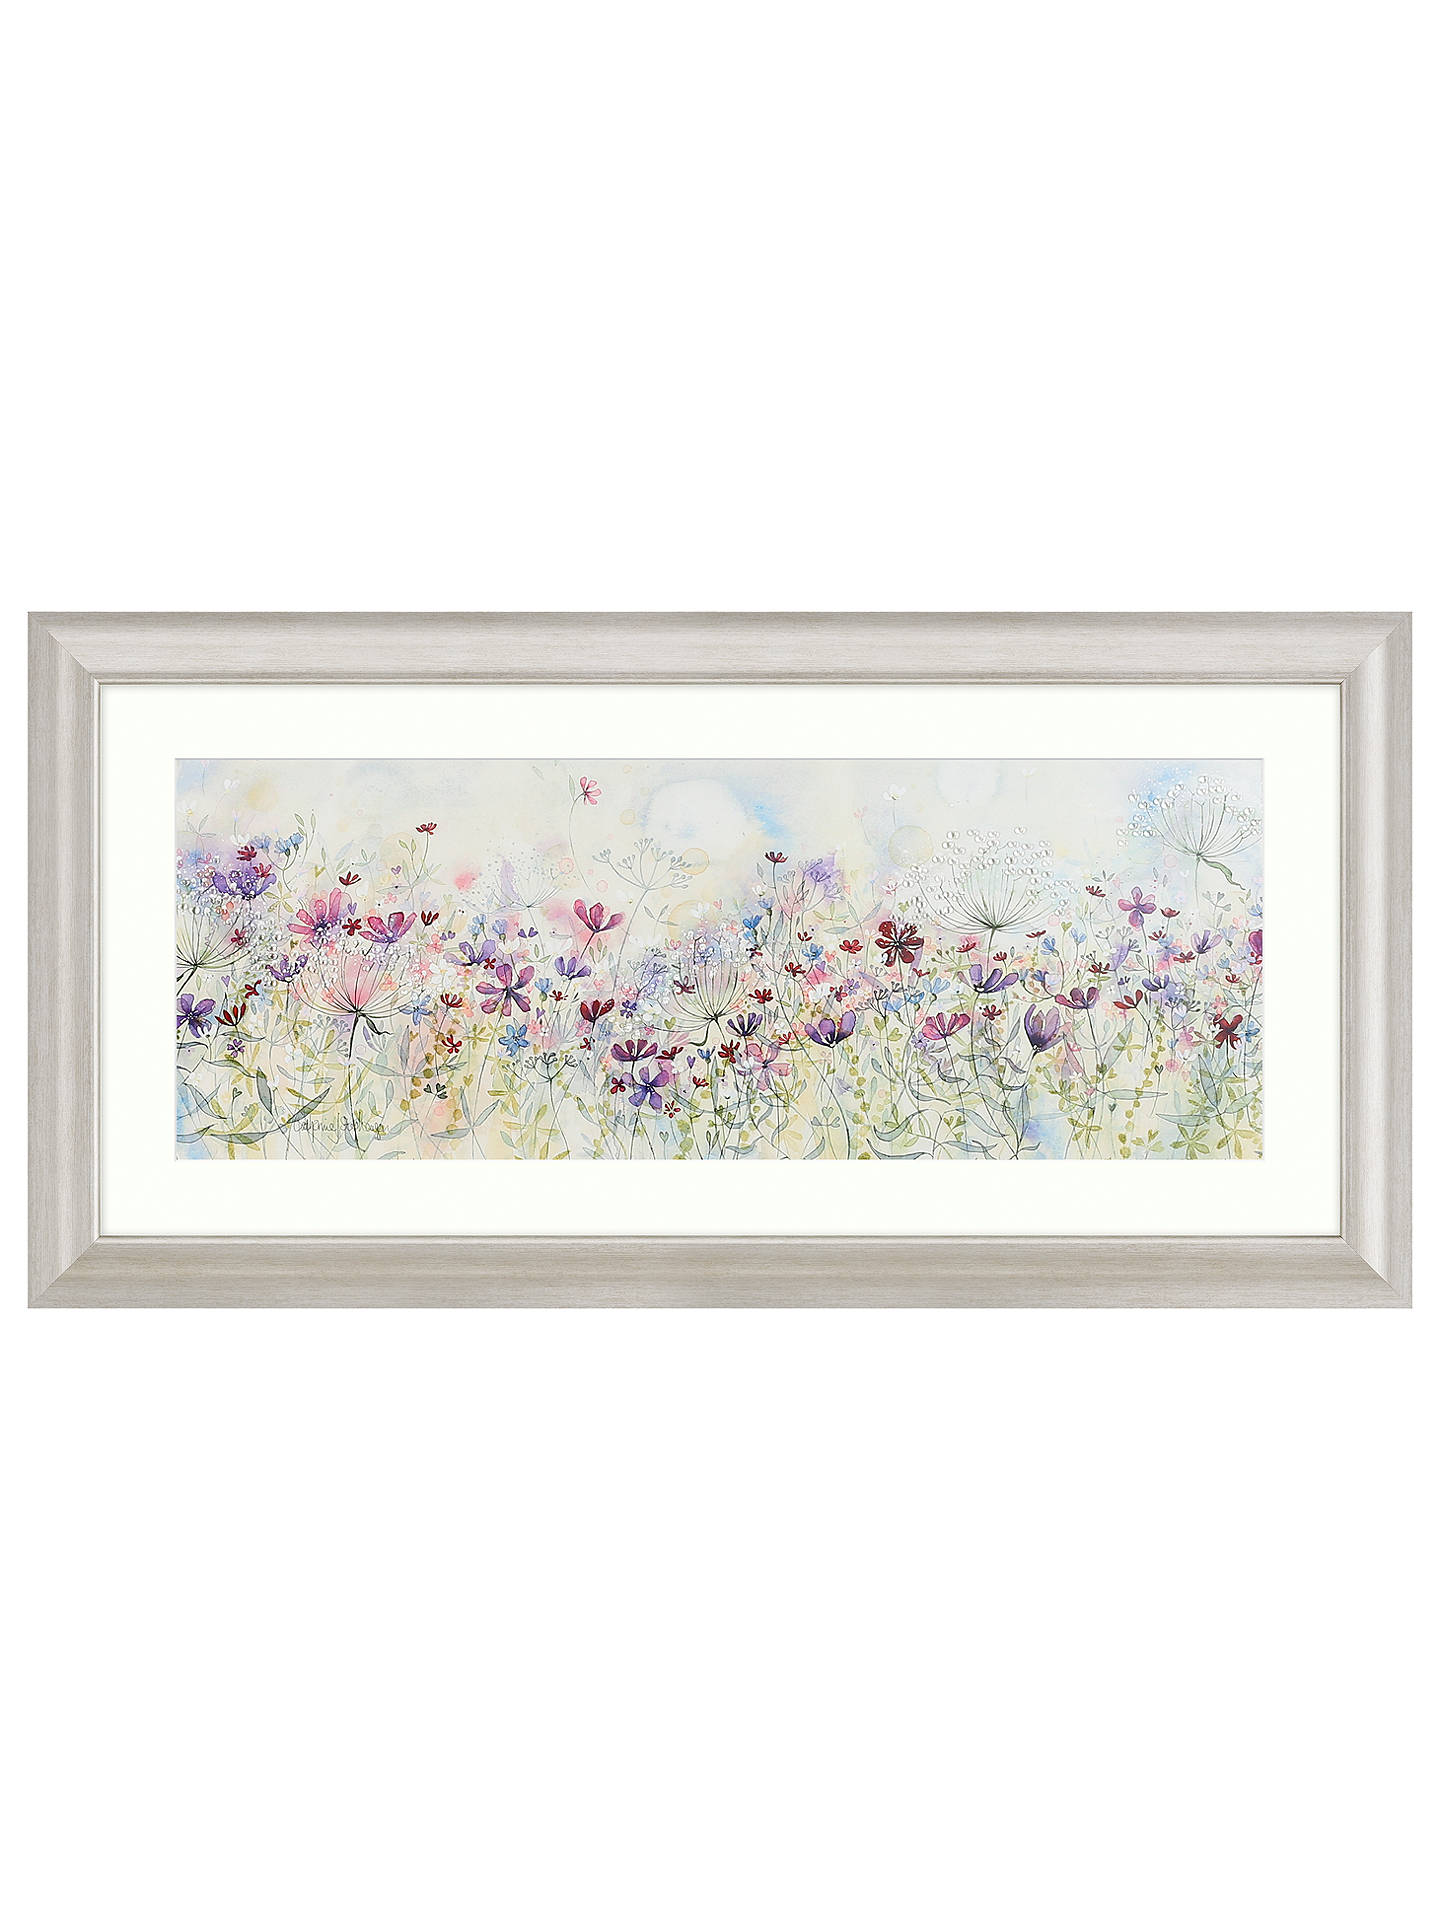 Buy Catherine Stephenson - Meadow Of Wild Flowers Embellished Framed Print, 110 x 55cm Online ...